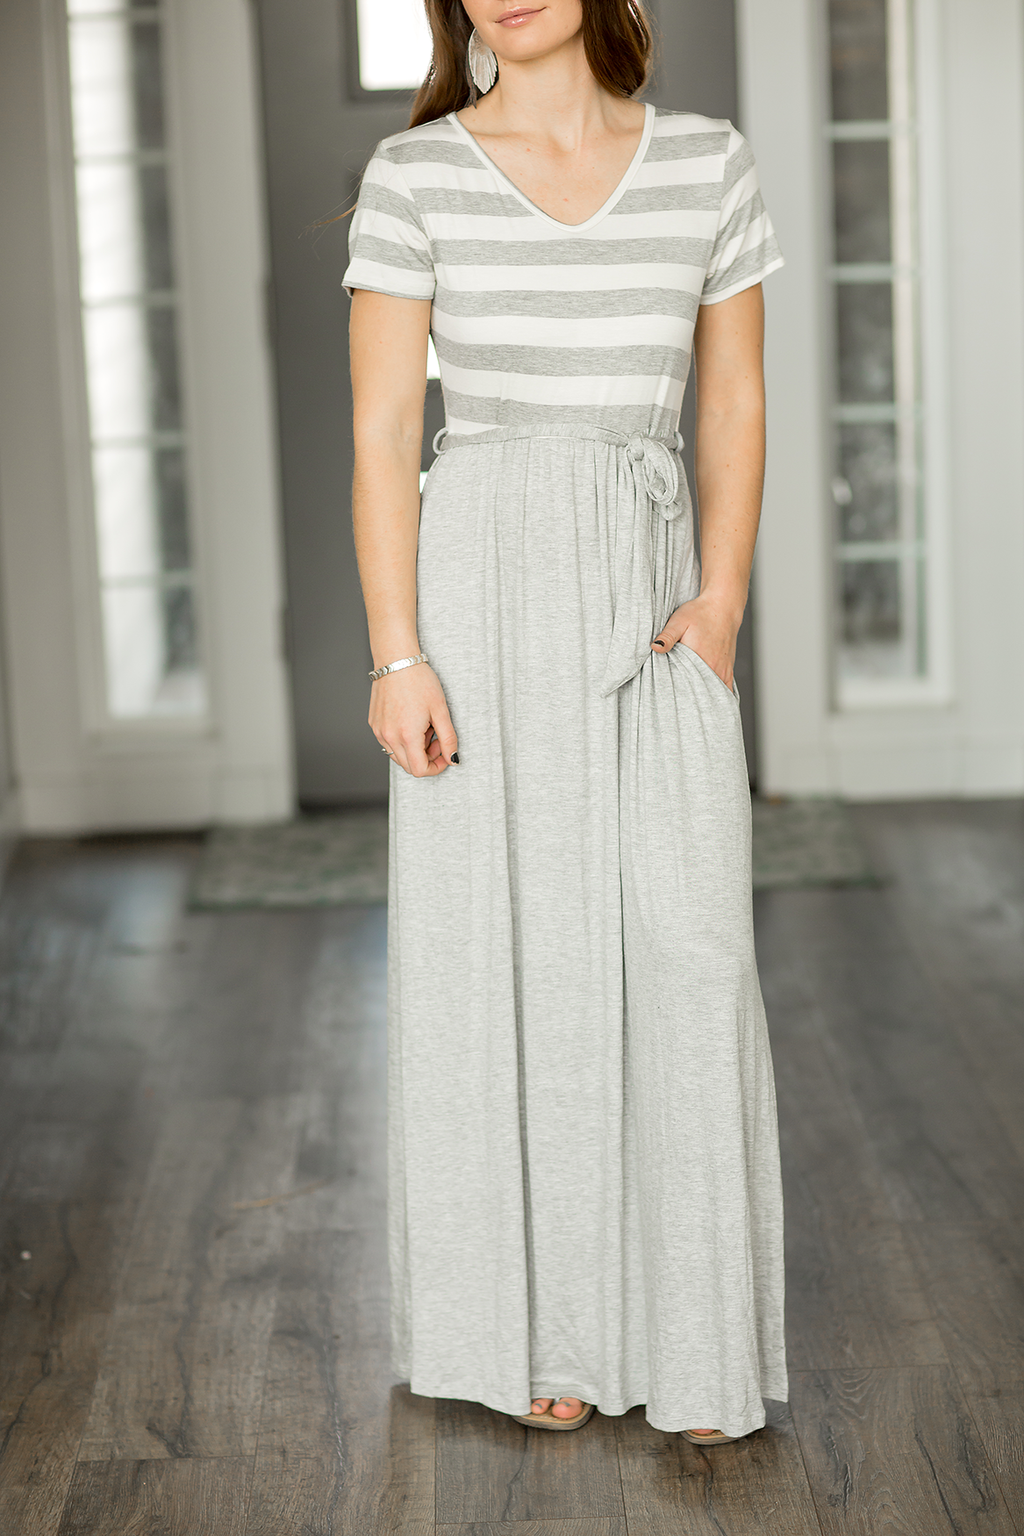 Picture Perfect Striped Maxi Dress in Gray